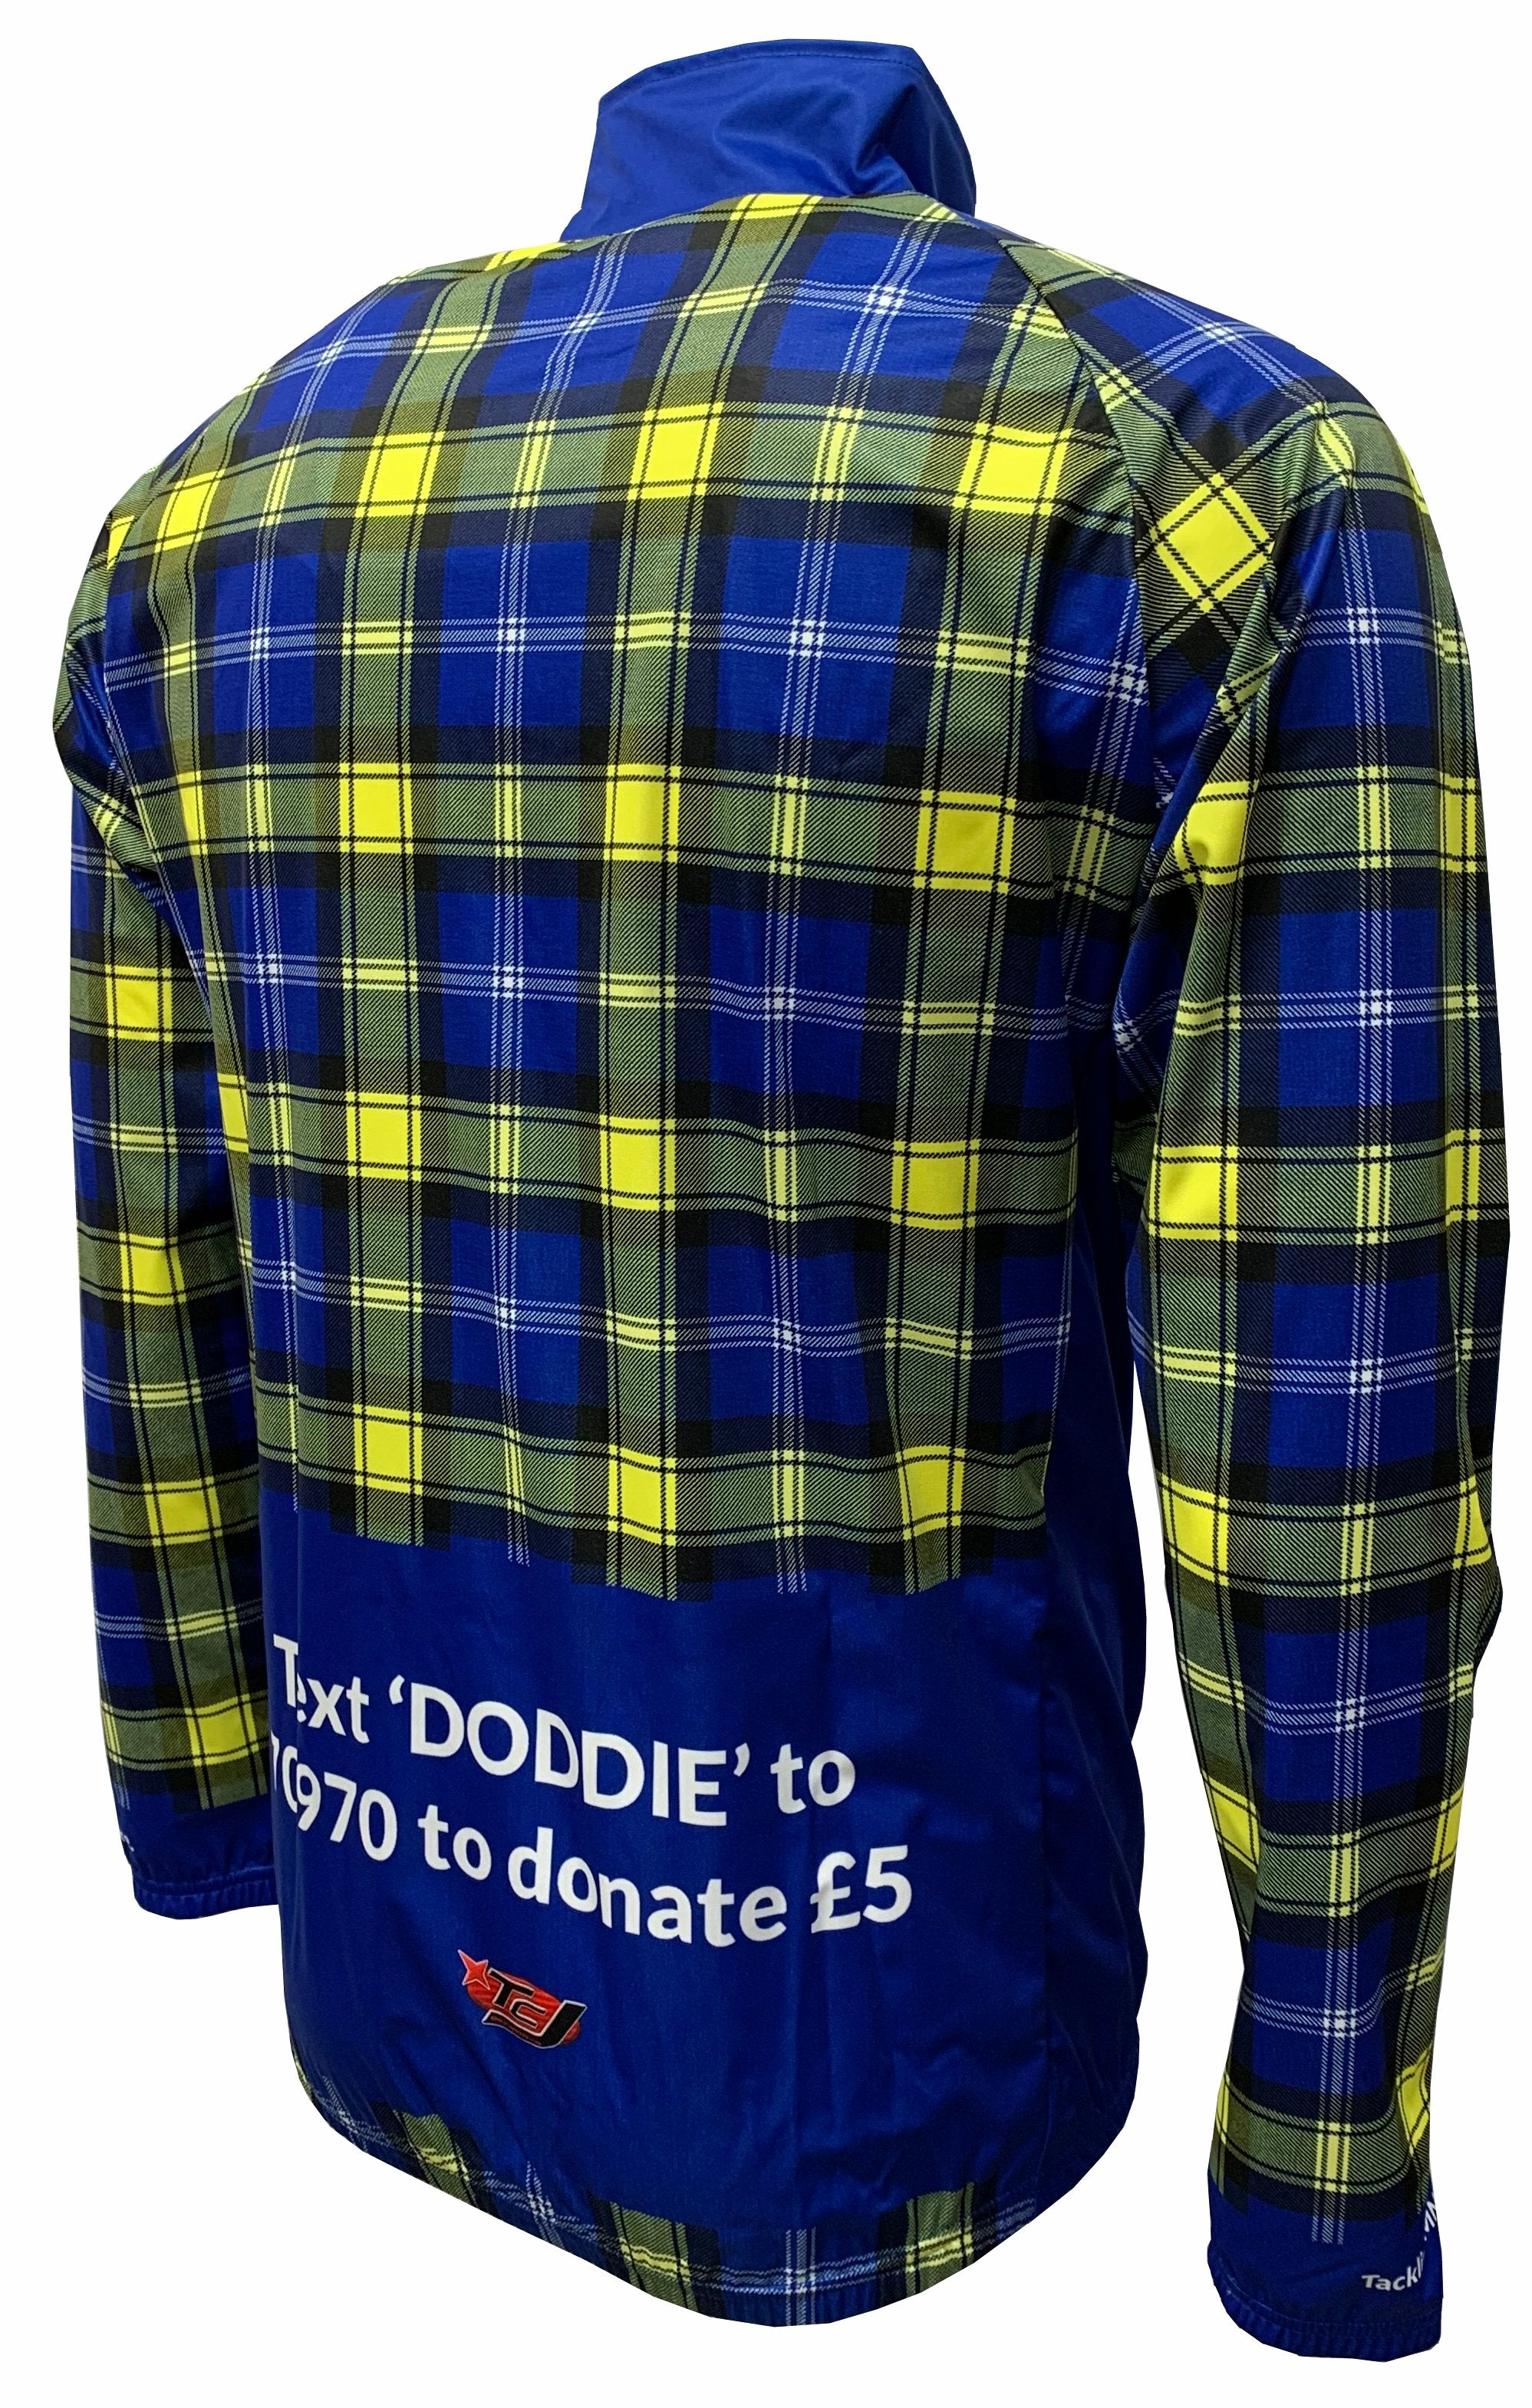 My Name'5 Doddie Cycling Windcheeta Lite Jacker Back